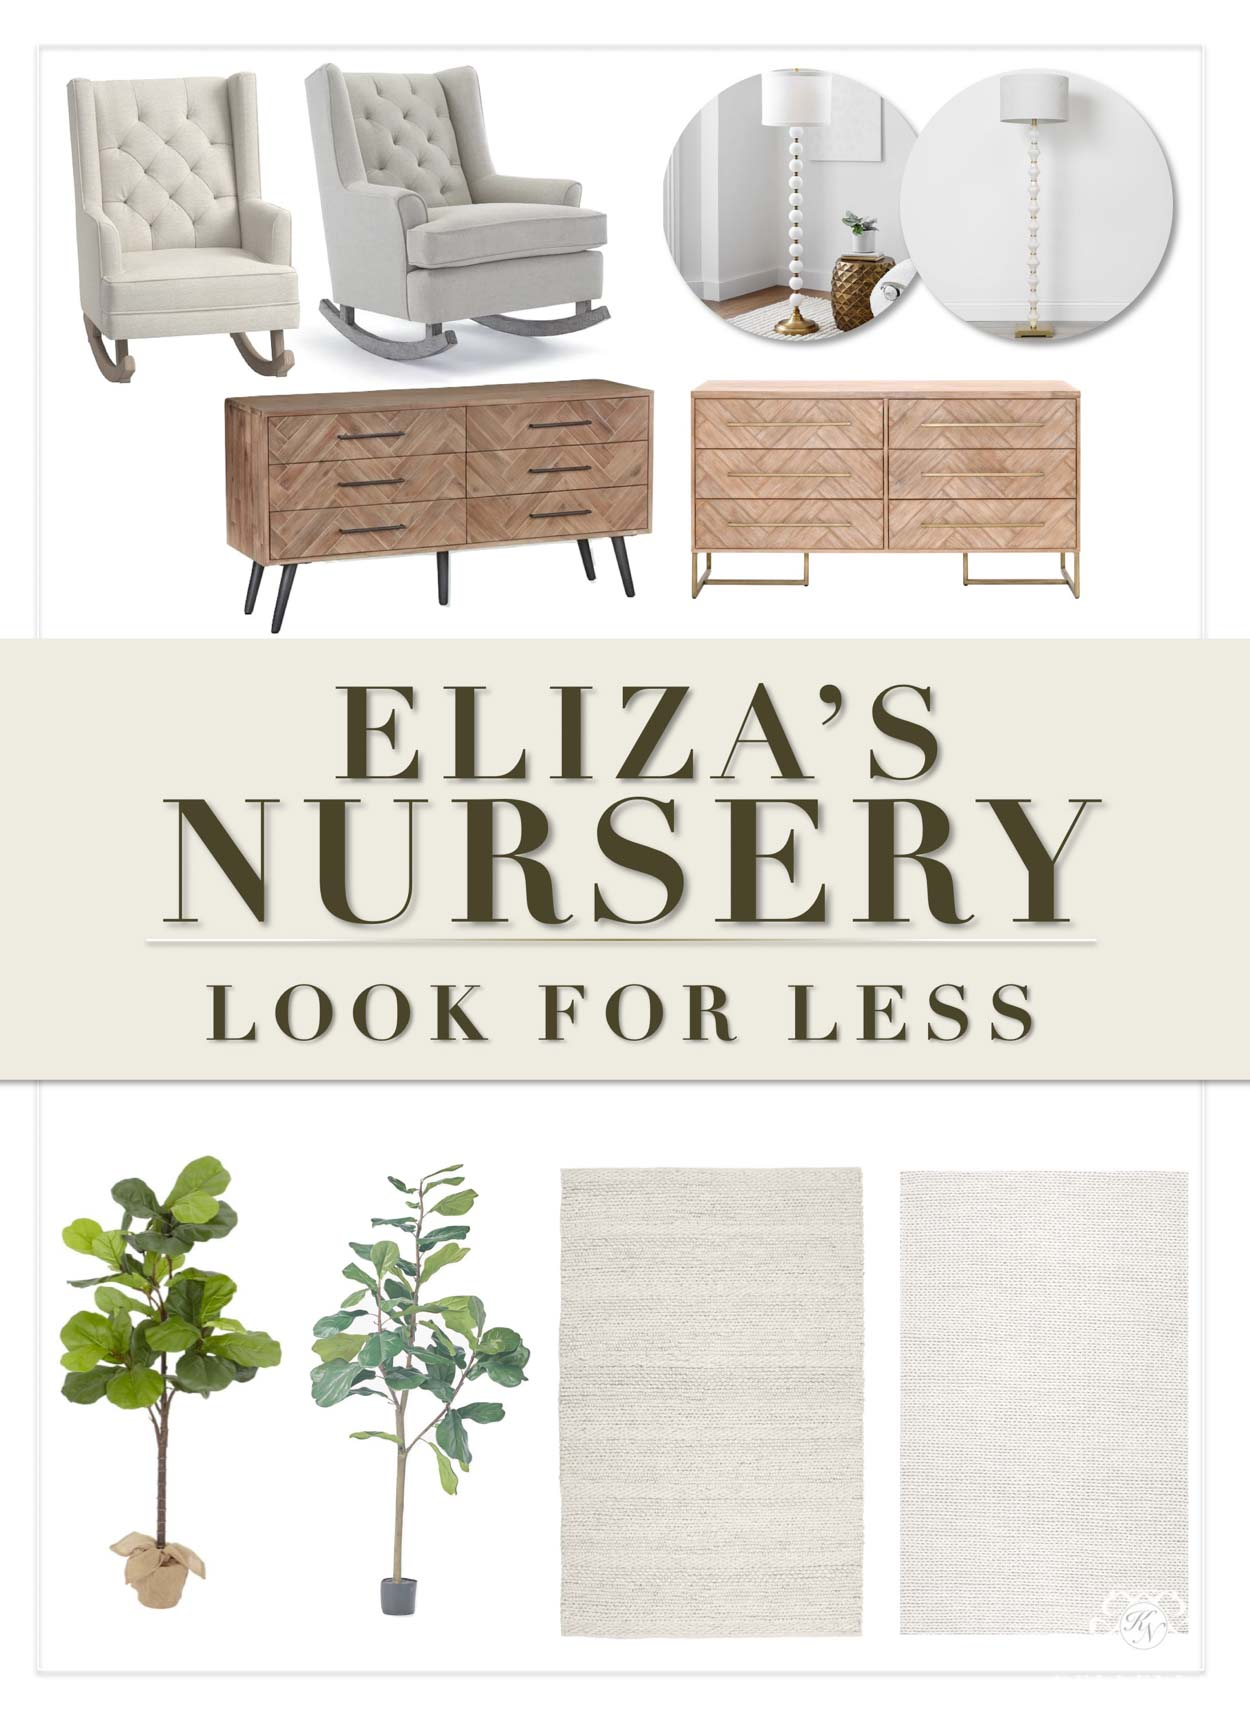 Popular Neutral Nursery Furniture & Decor -- Affordable Look Alikes for Less!